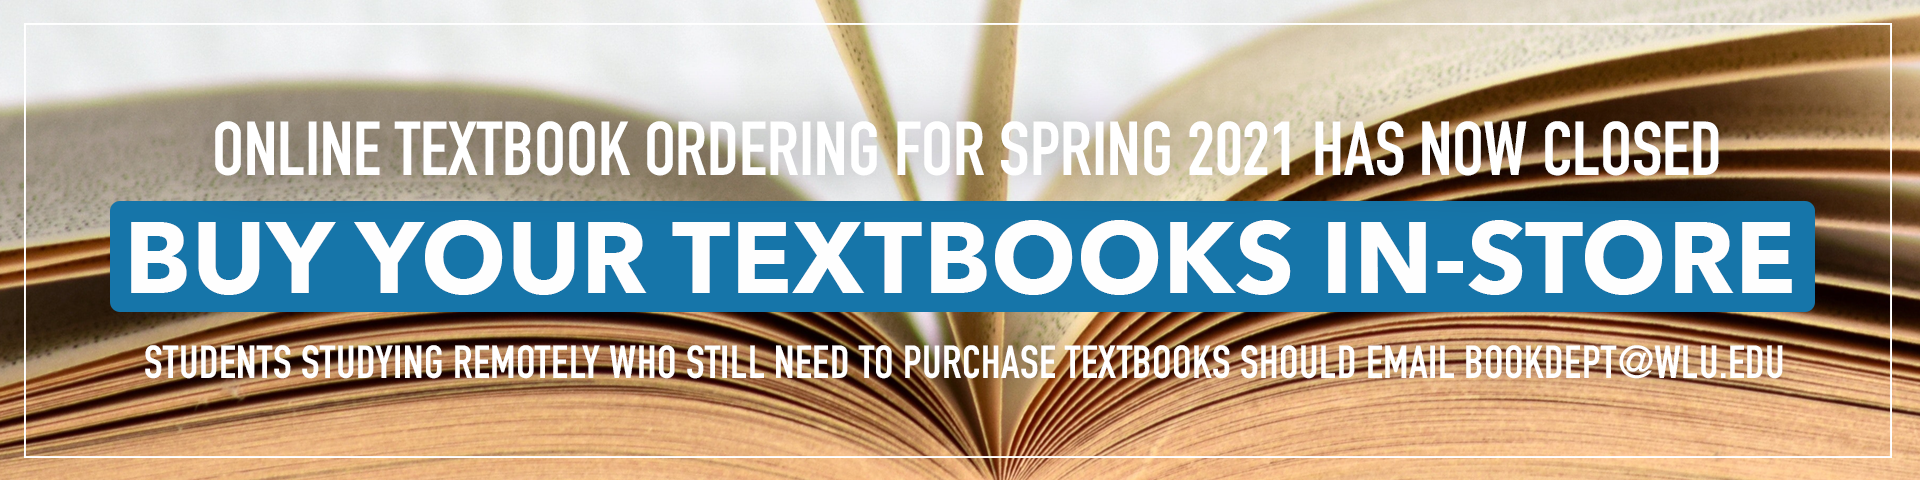 Shop Spring Term Textbooks In-store